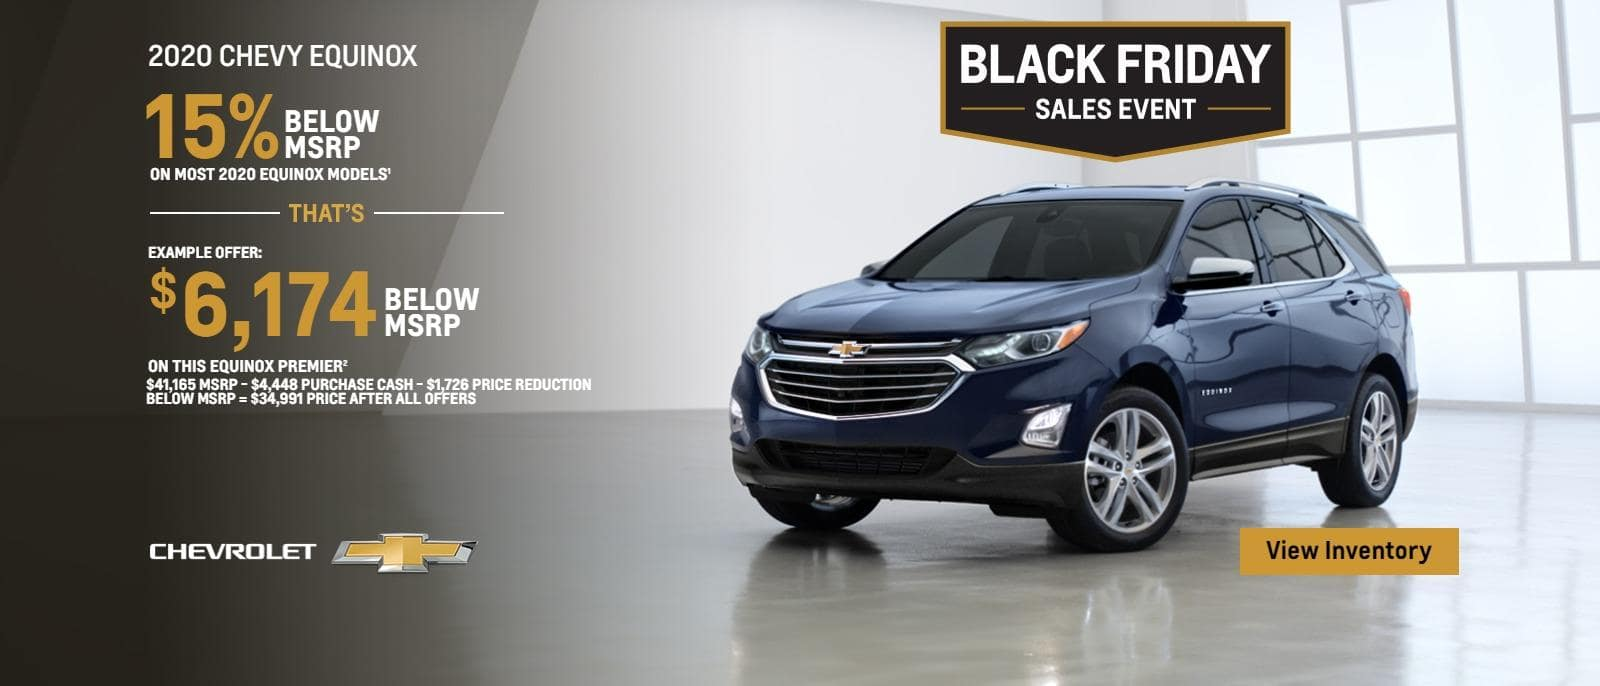 Black_Friday_Bayer_Chevy_Equinox